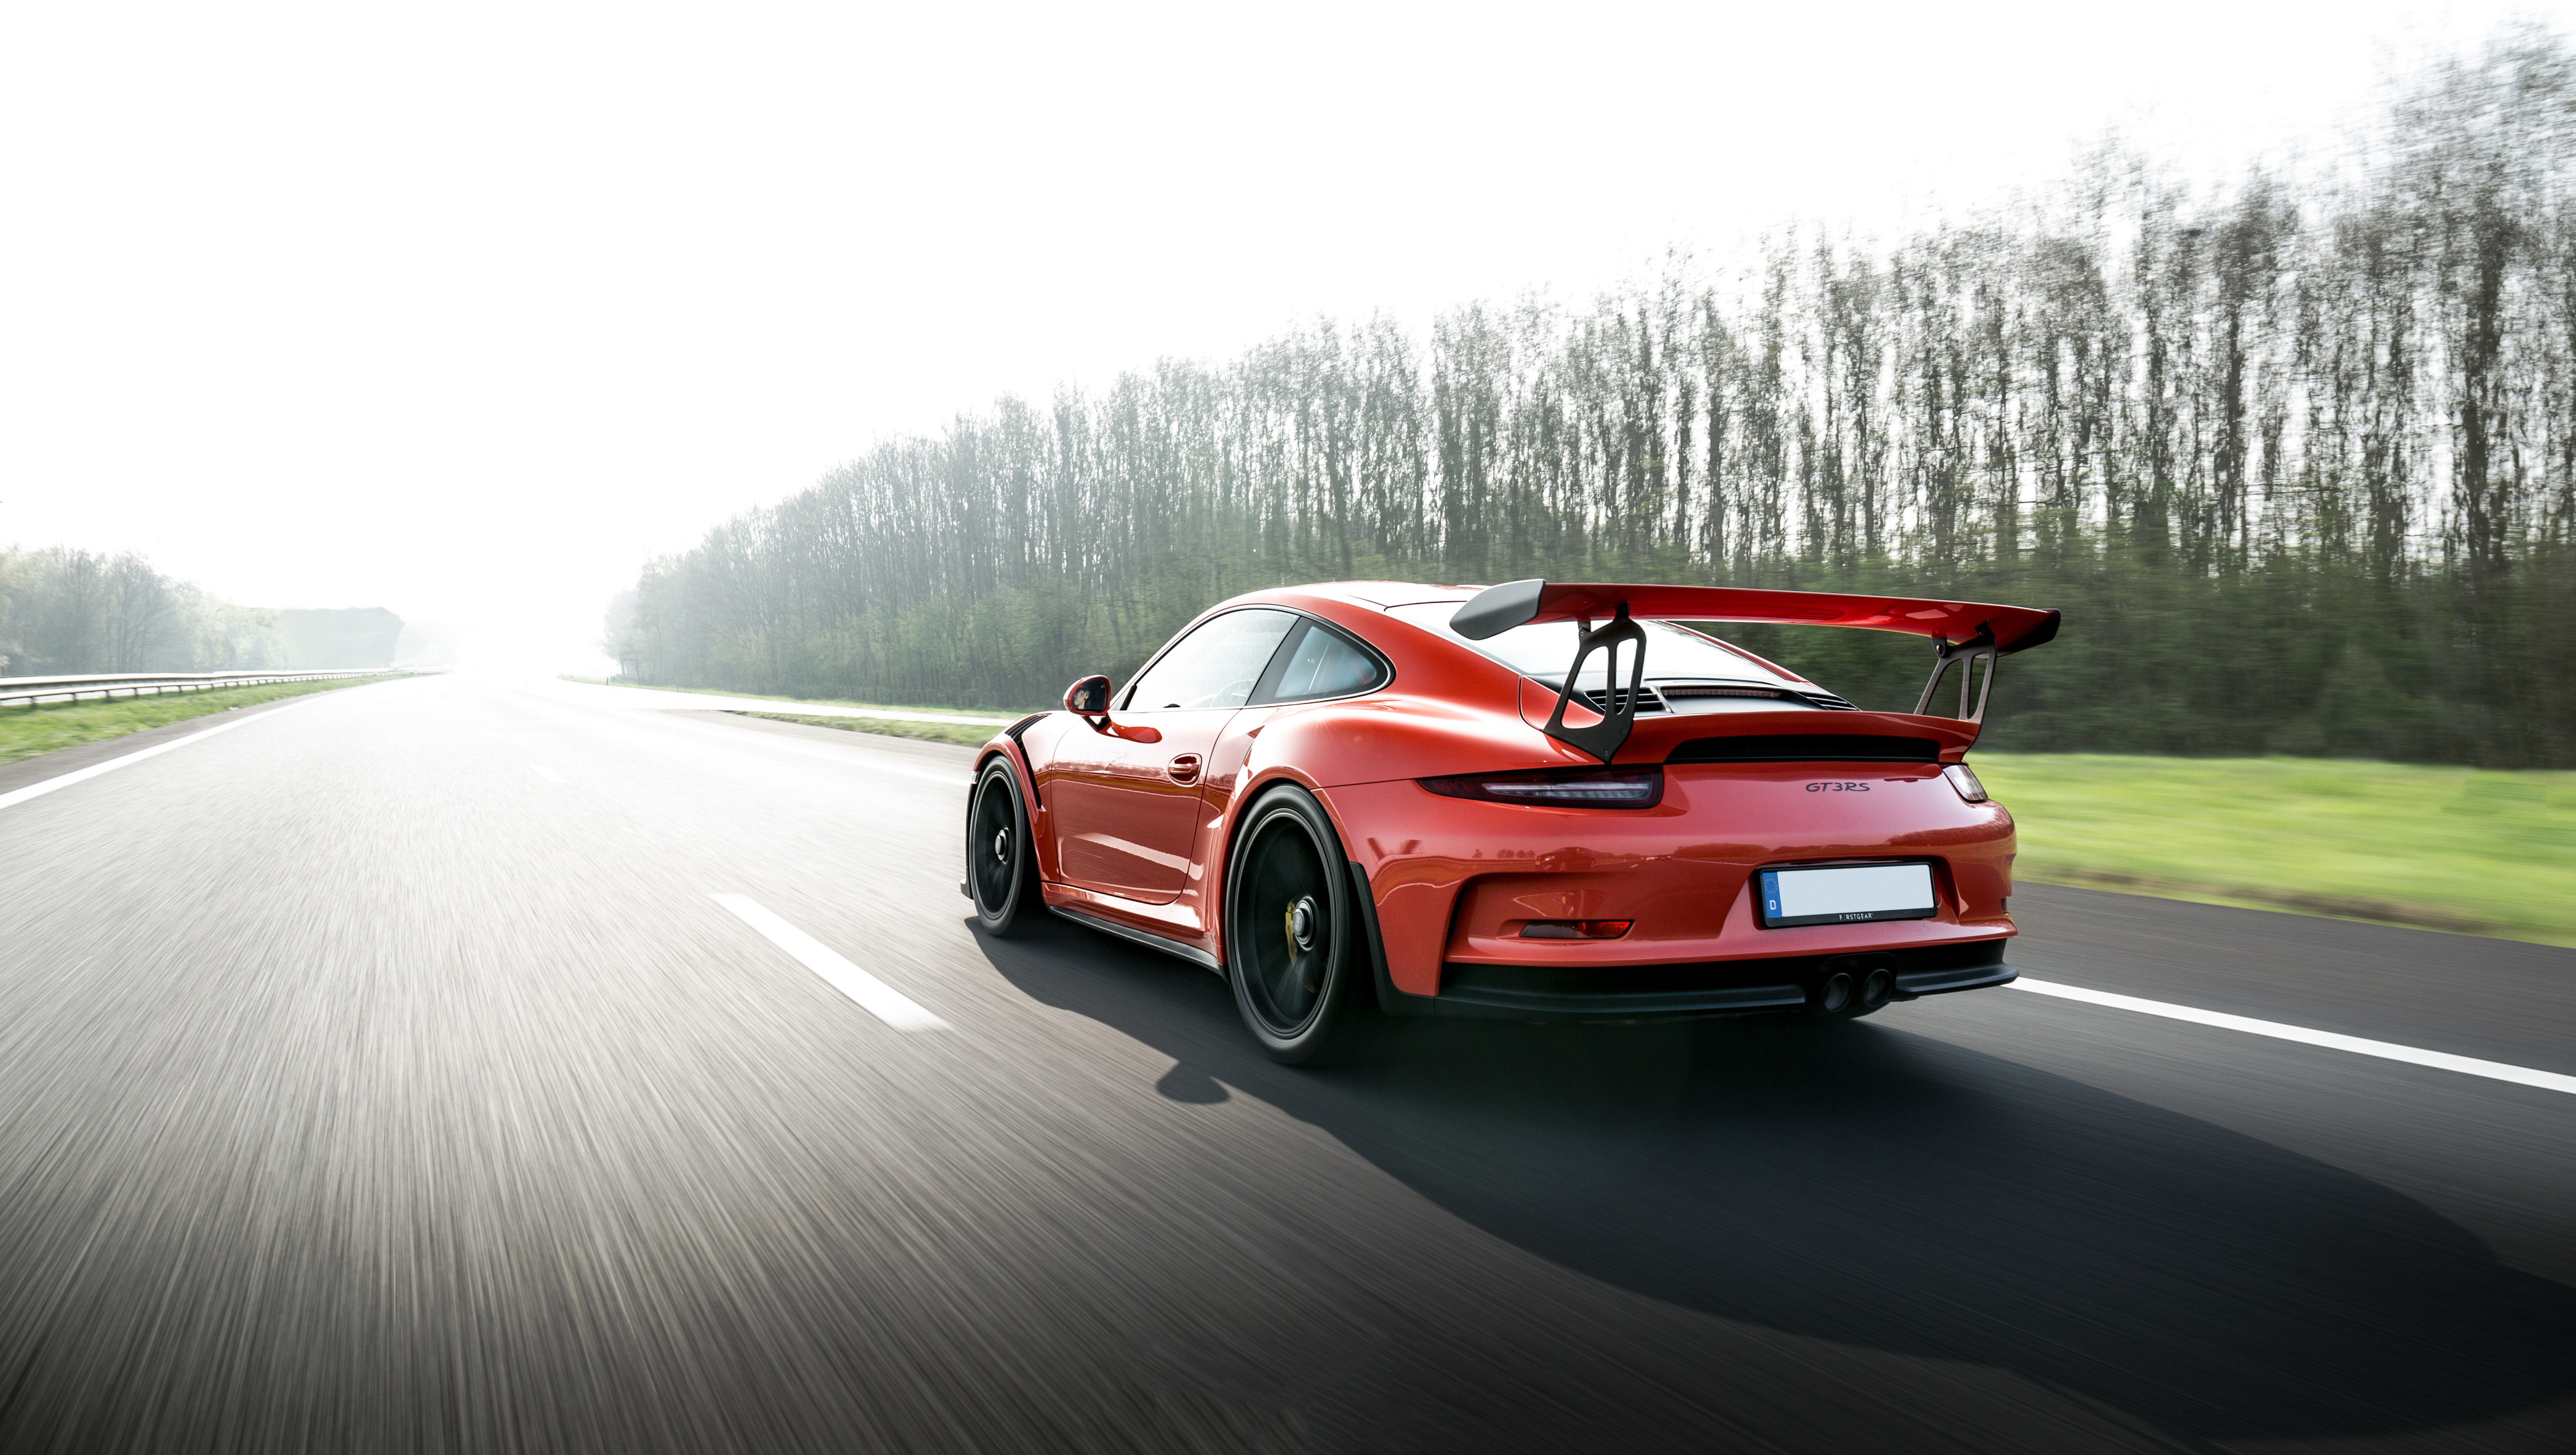 1920x1080 Porsche 911 GT3 RS 2018 5k Rear Laptop Full HD